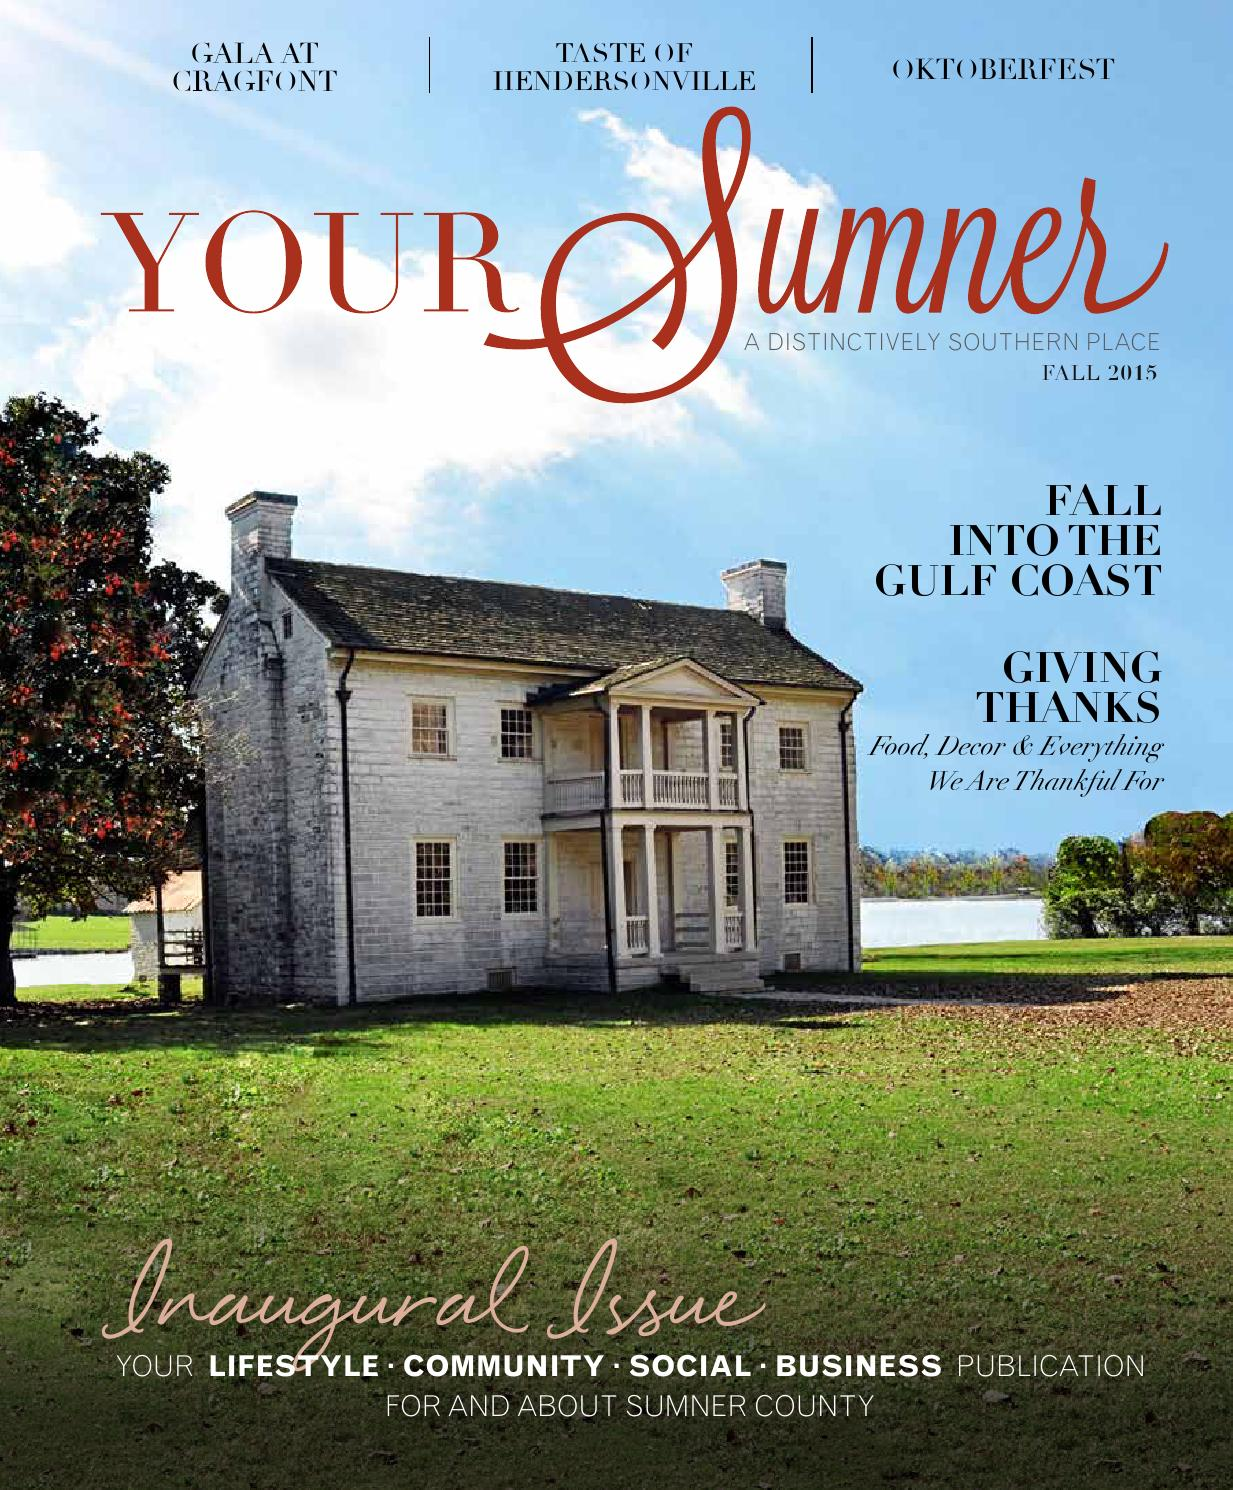 vinic lighting. YOUR Sumner Fall 2015 By Williamson - A Distinctively Southern Place Issuu Vinic Lighting